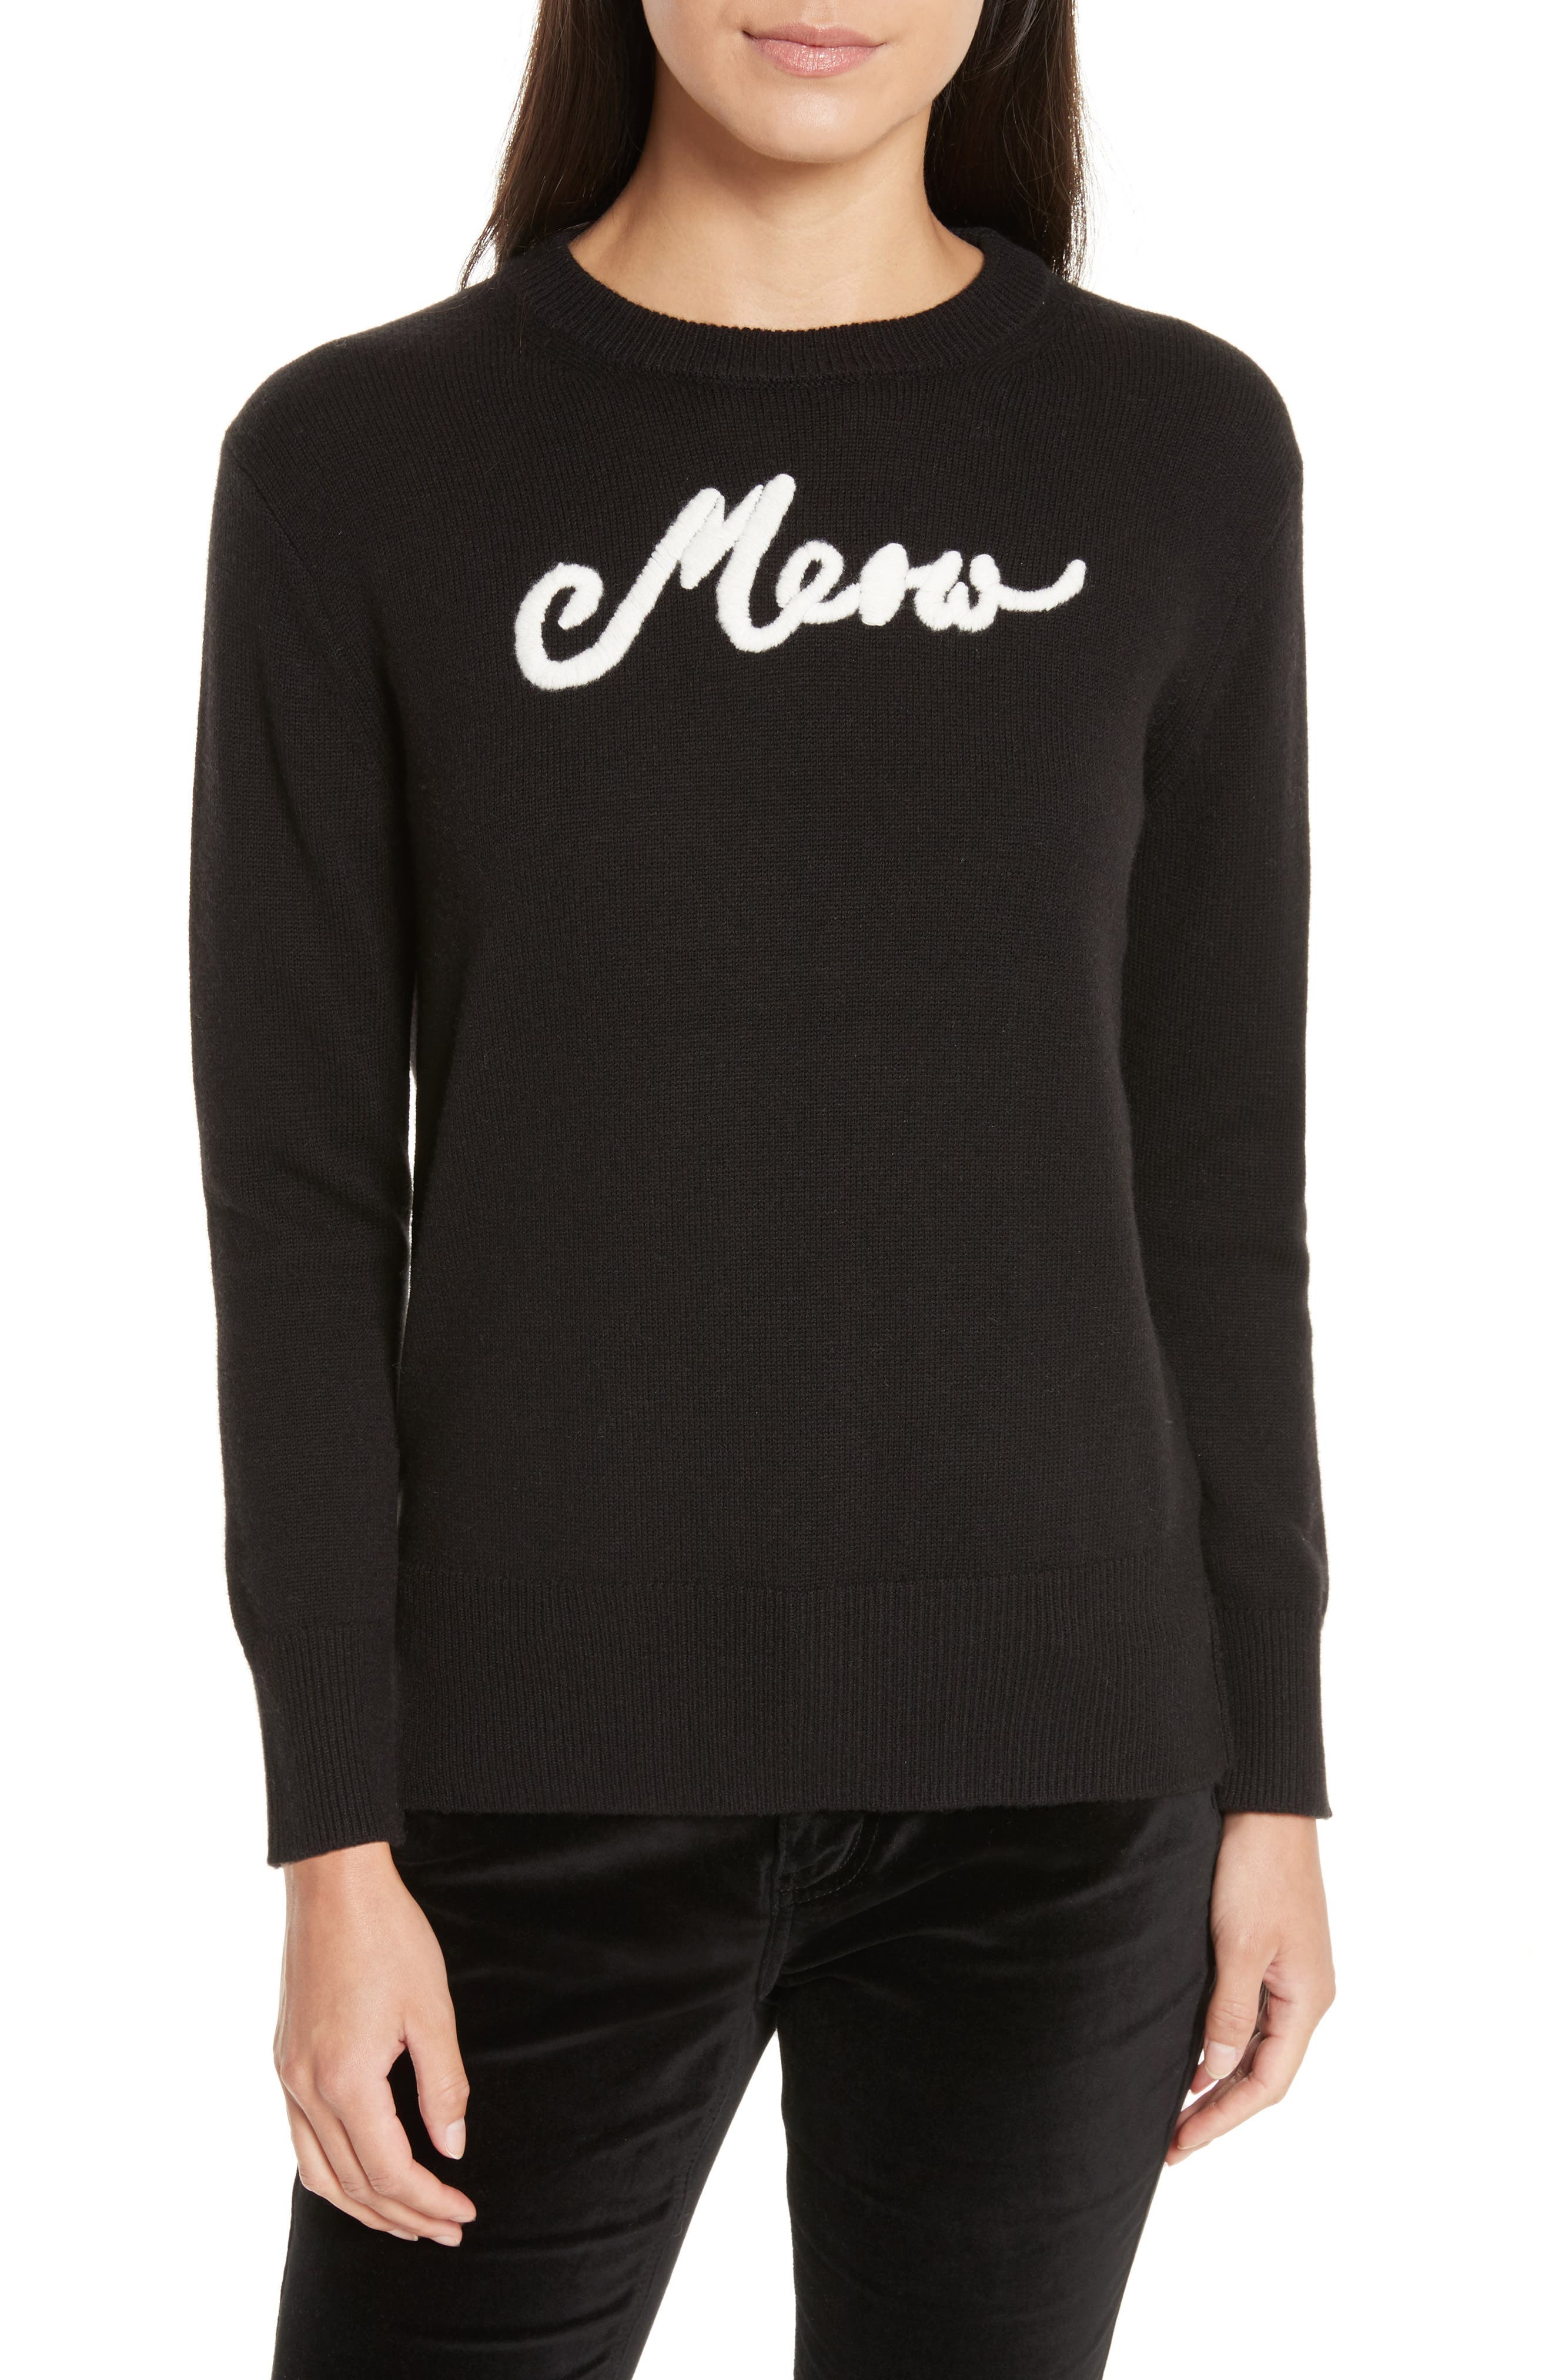 meow sweater,                         Main,                         color, Black